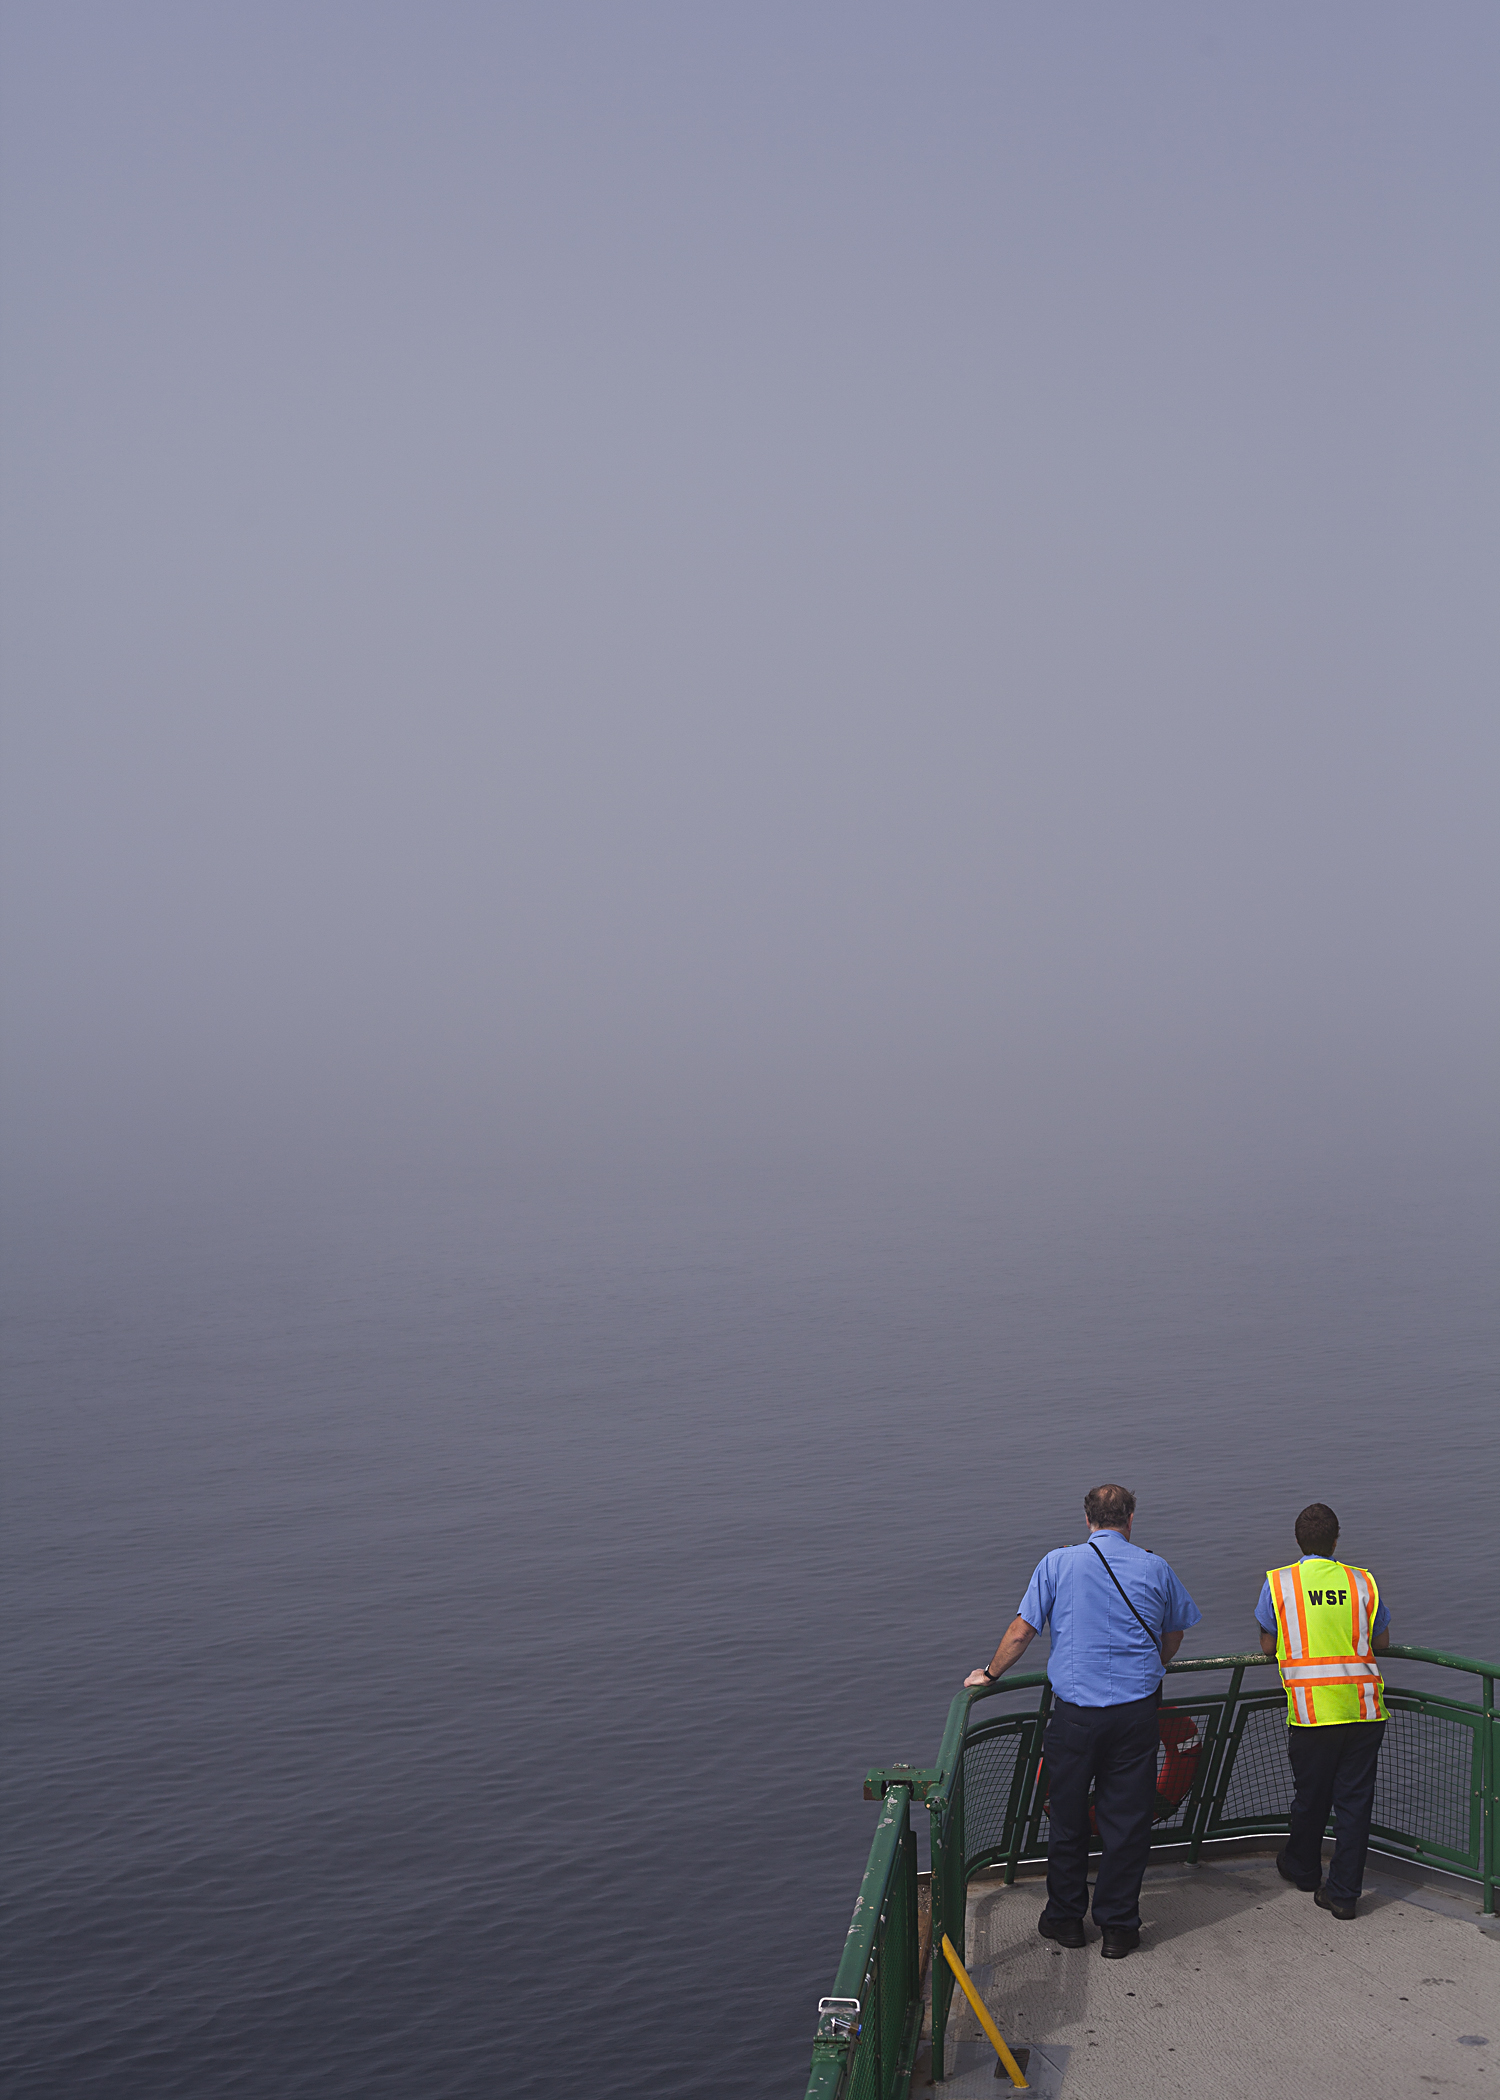 Extreme fog slows the passage of the Washington State ferry during an afternoon sailing from Seattle to Bainbridge Island.